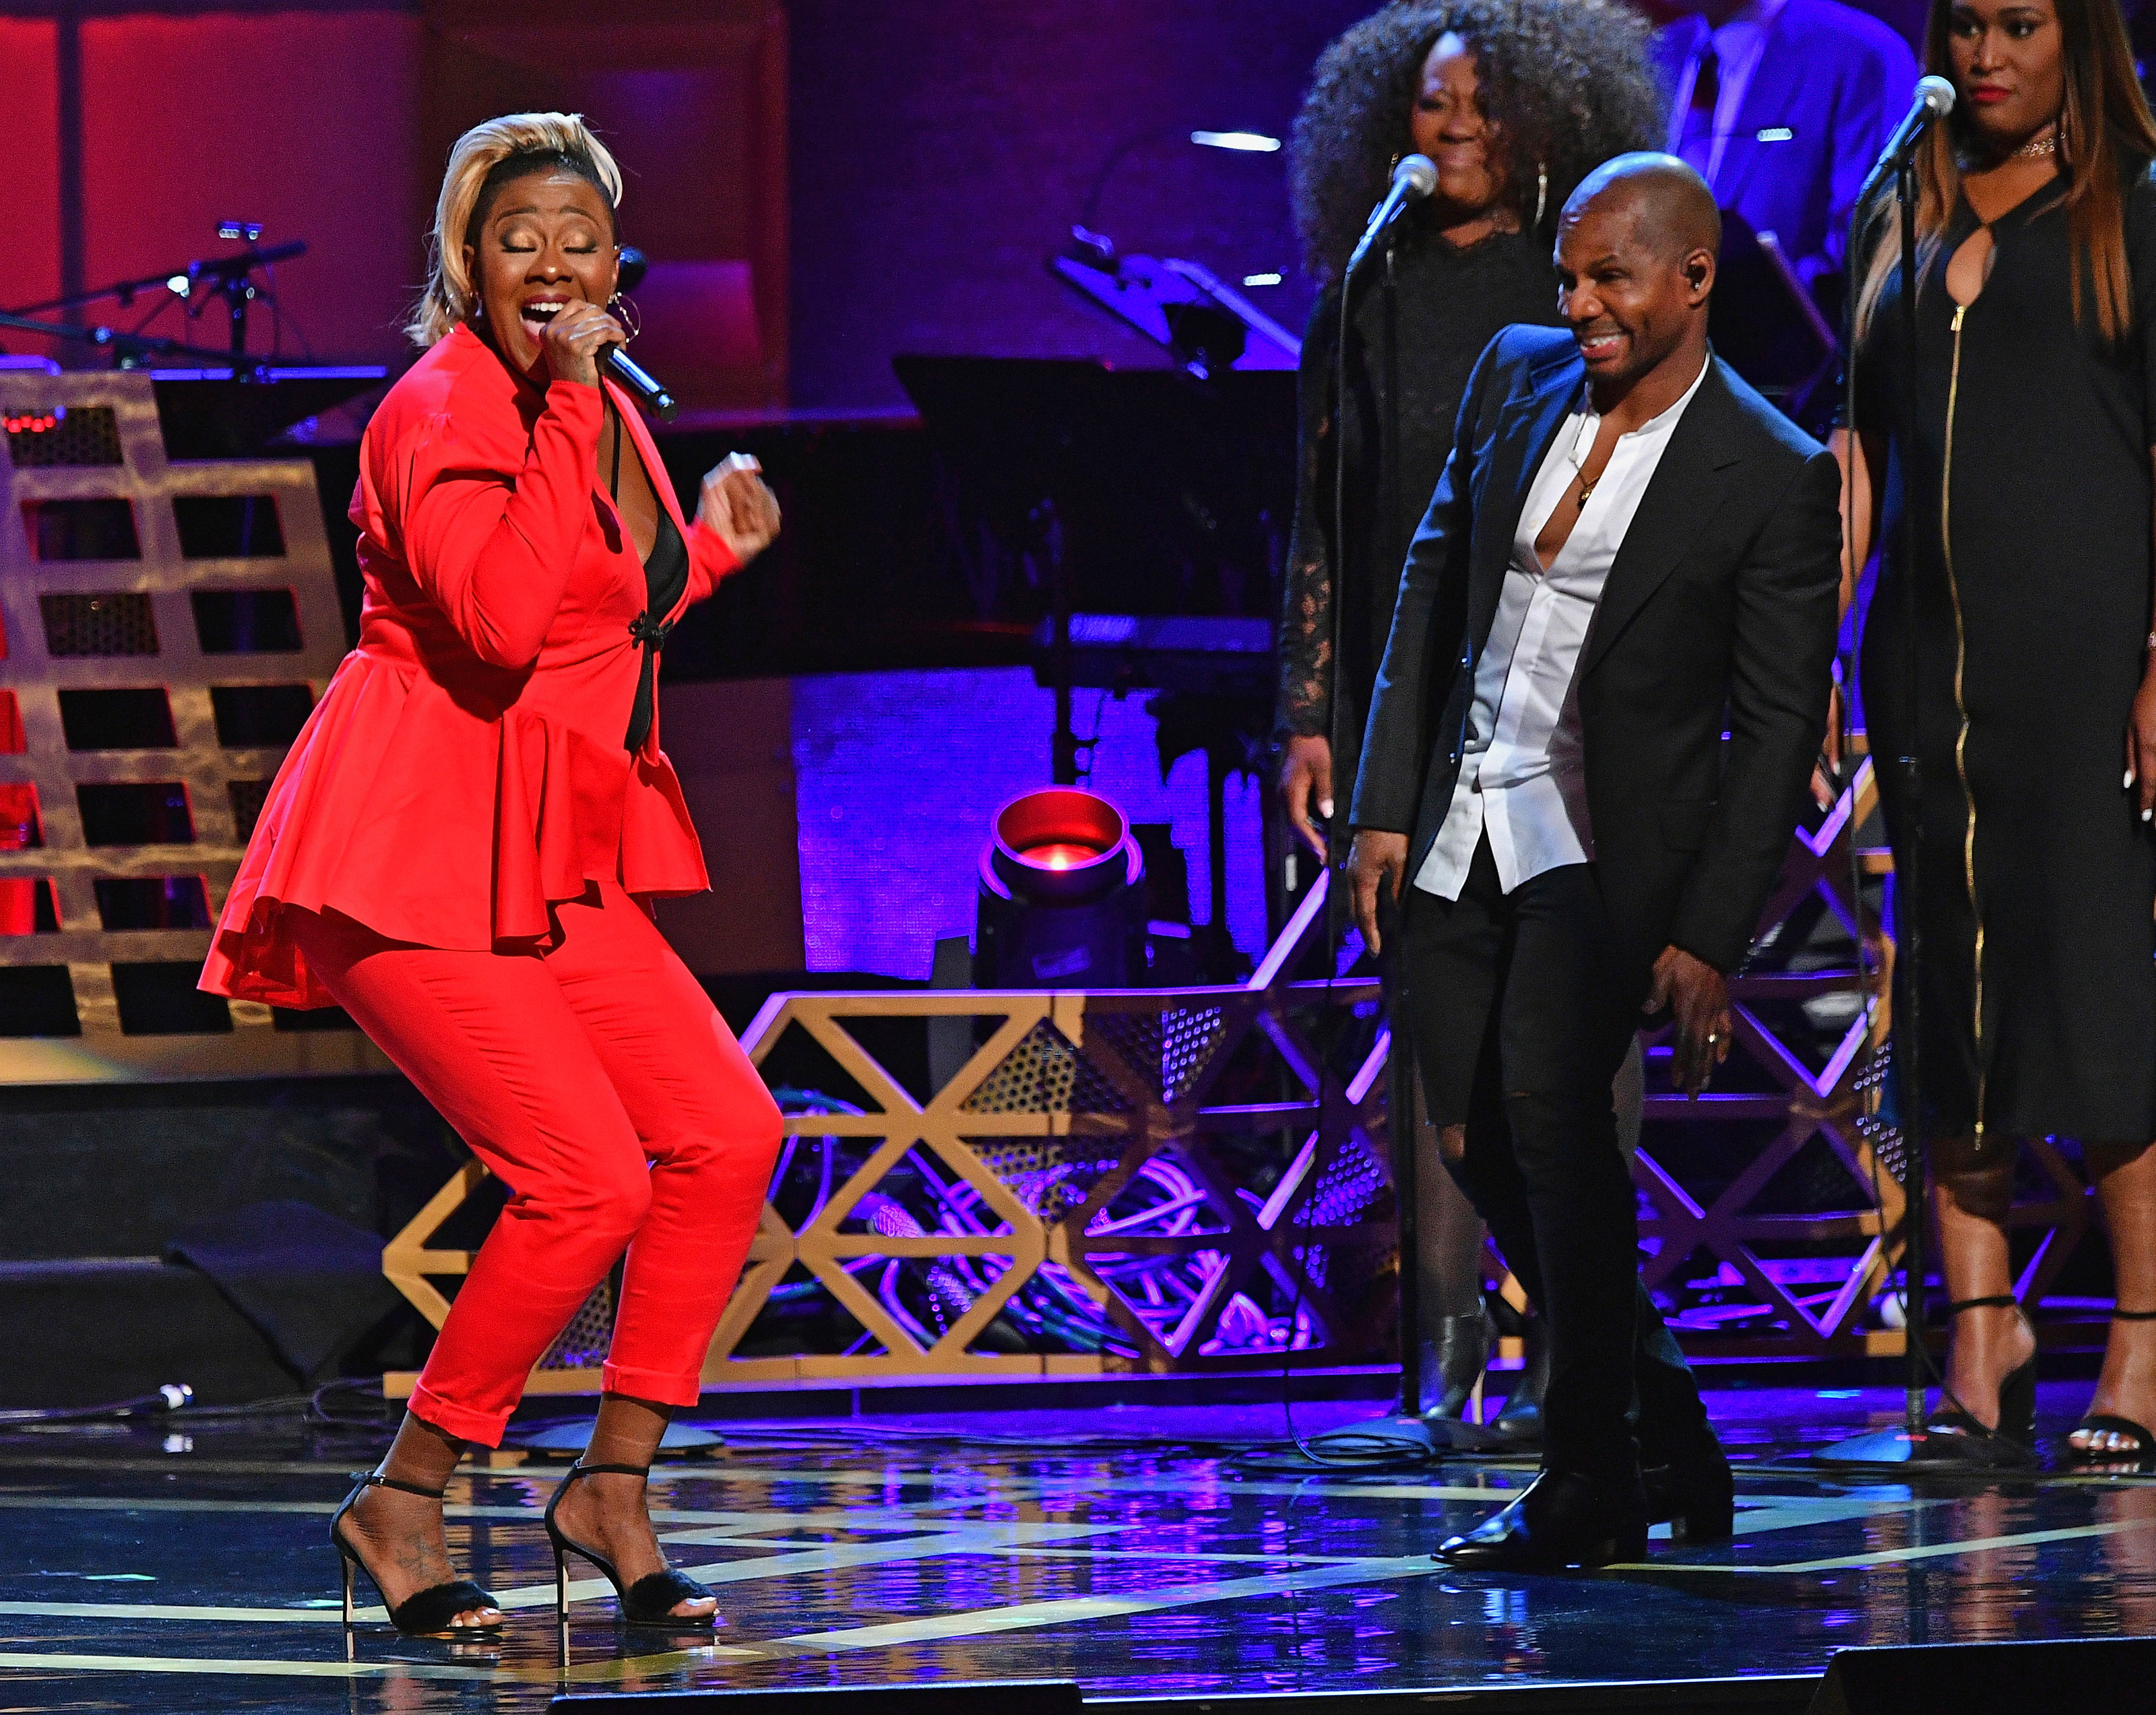 NEW YORK, NY - JULY 11:  Le'Andria Johnson performs with Kirk Franklin onstage during the GRAMMY Salute to Music Legends at Beacon Theatre on July 11, 2017 in New York City.  (Photo by Dia Dipasupil/Getty Images for NARAS)